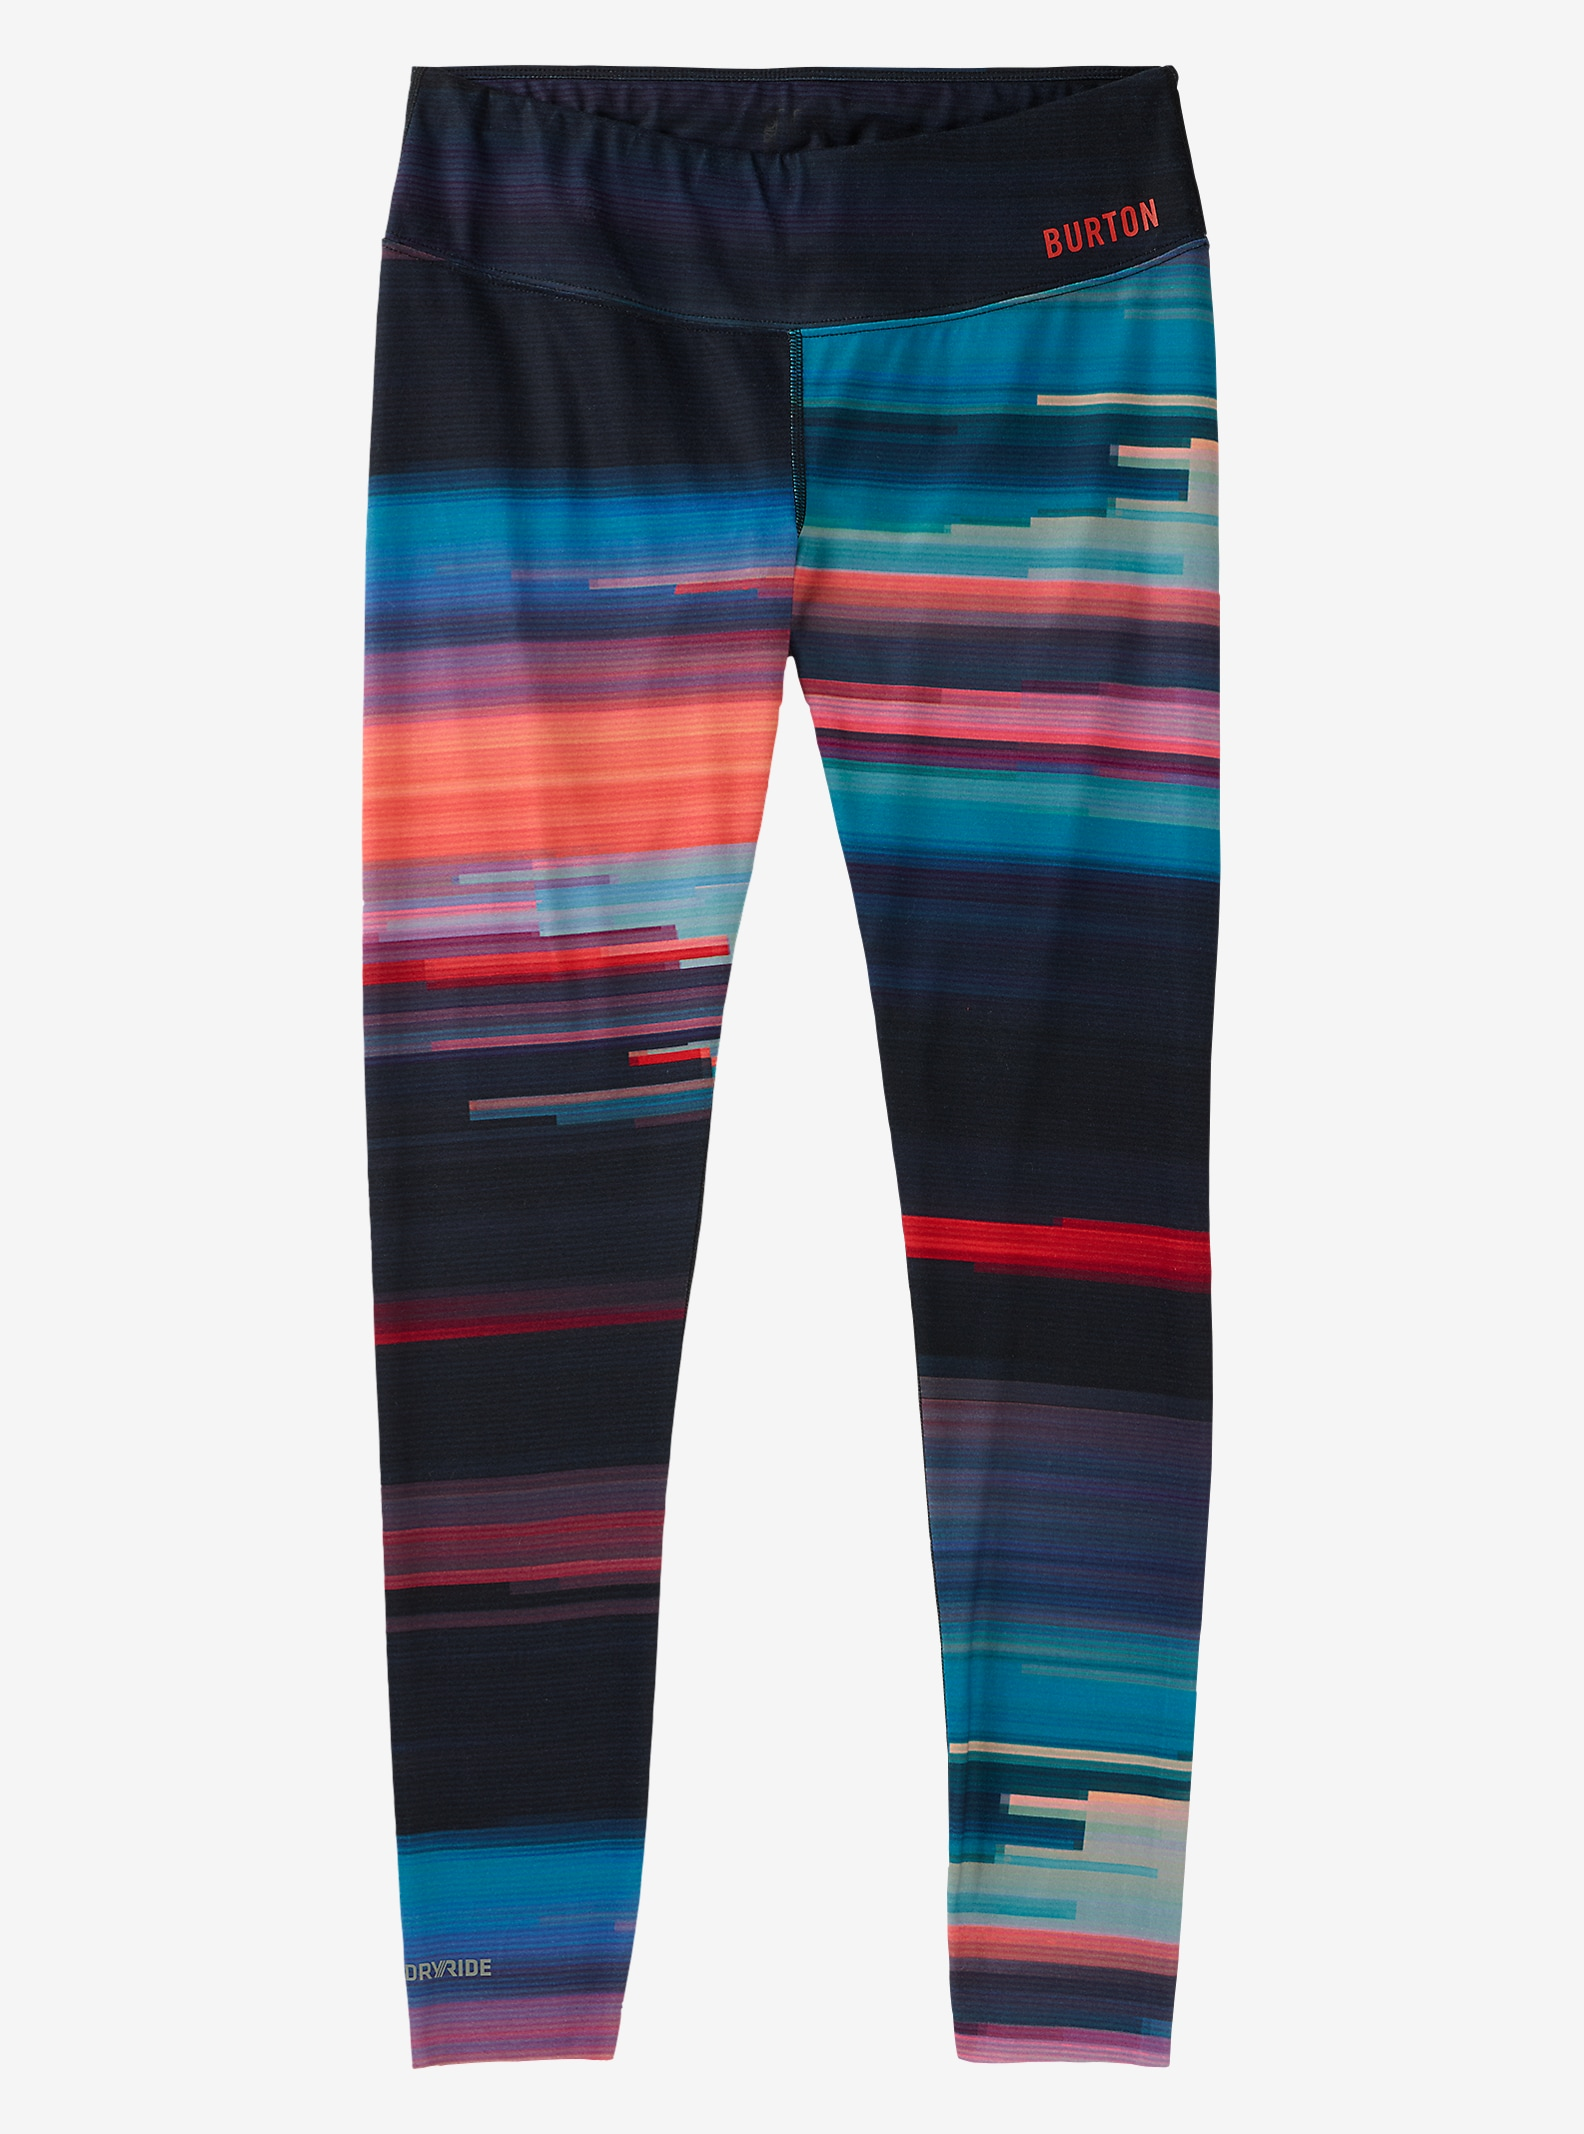 Burton Women's Midweight Base Layer Pant shown in Coral Flynn Glitch